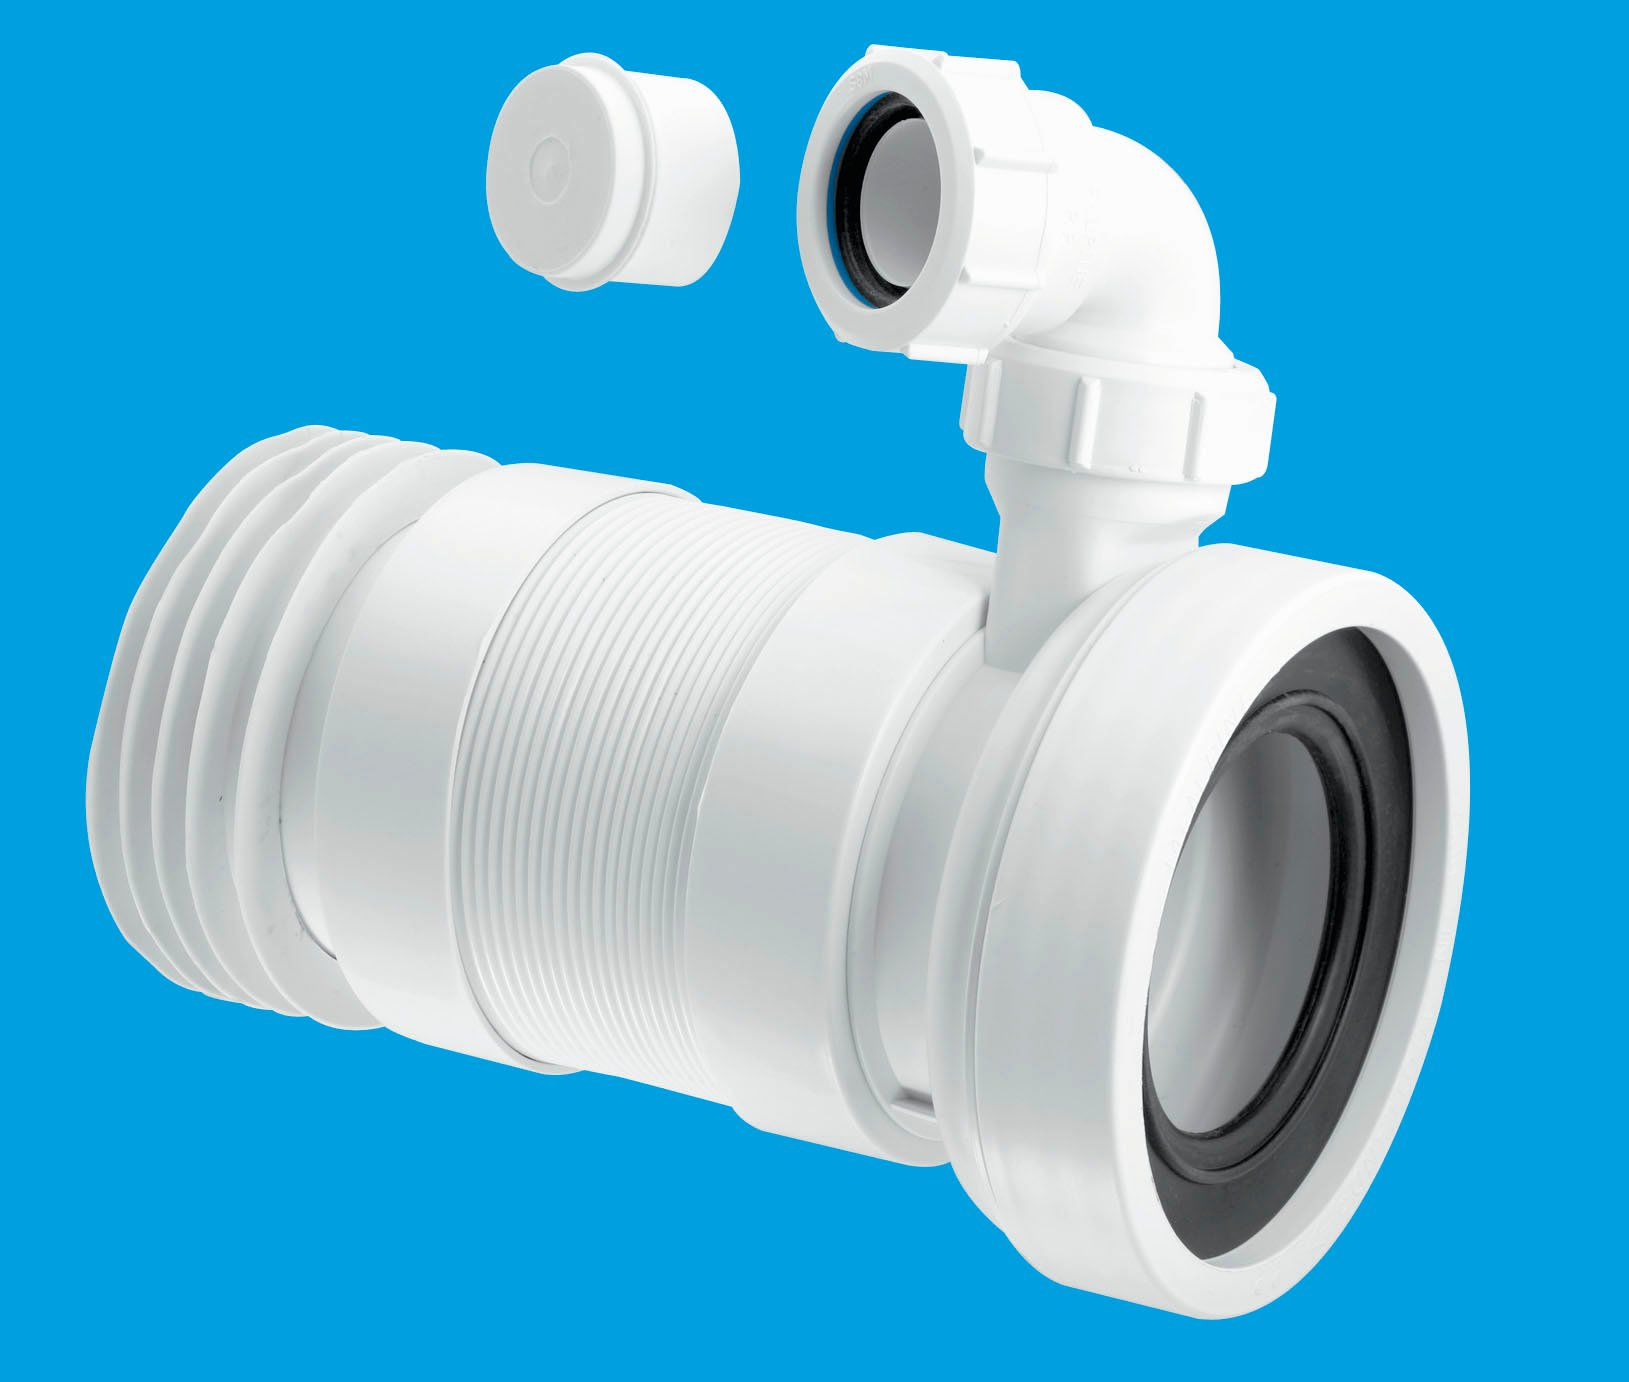 Straight Flexible Wc Connector With Vent Boss Mcalpine